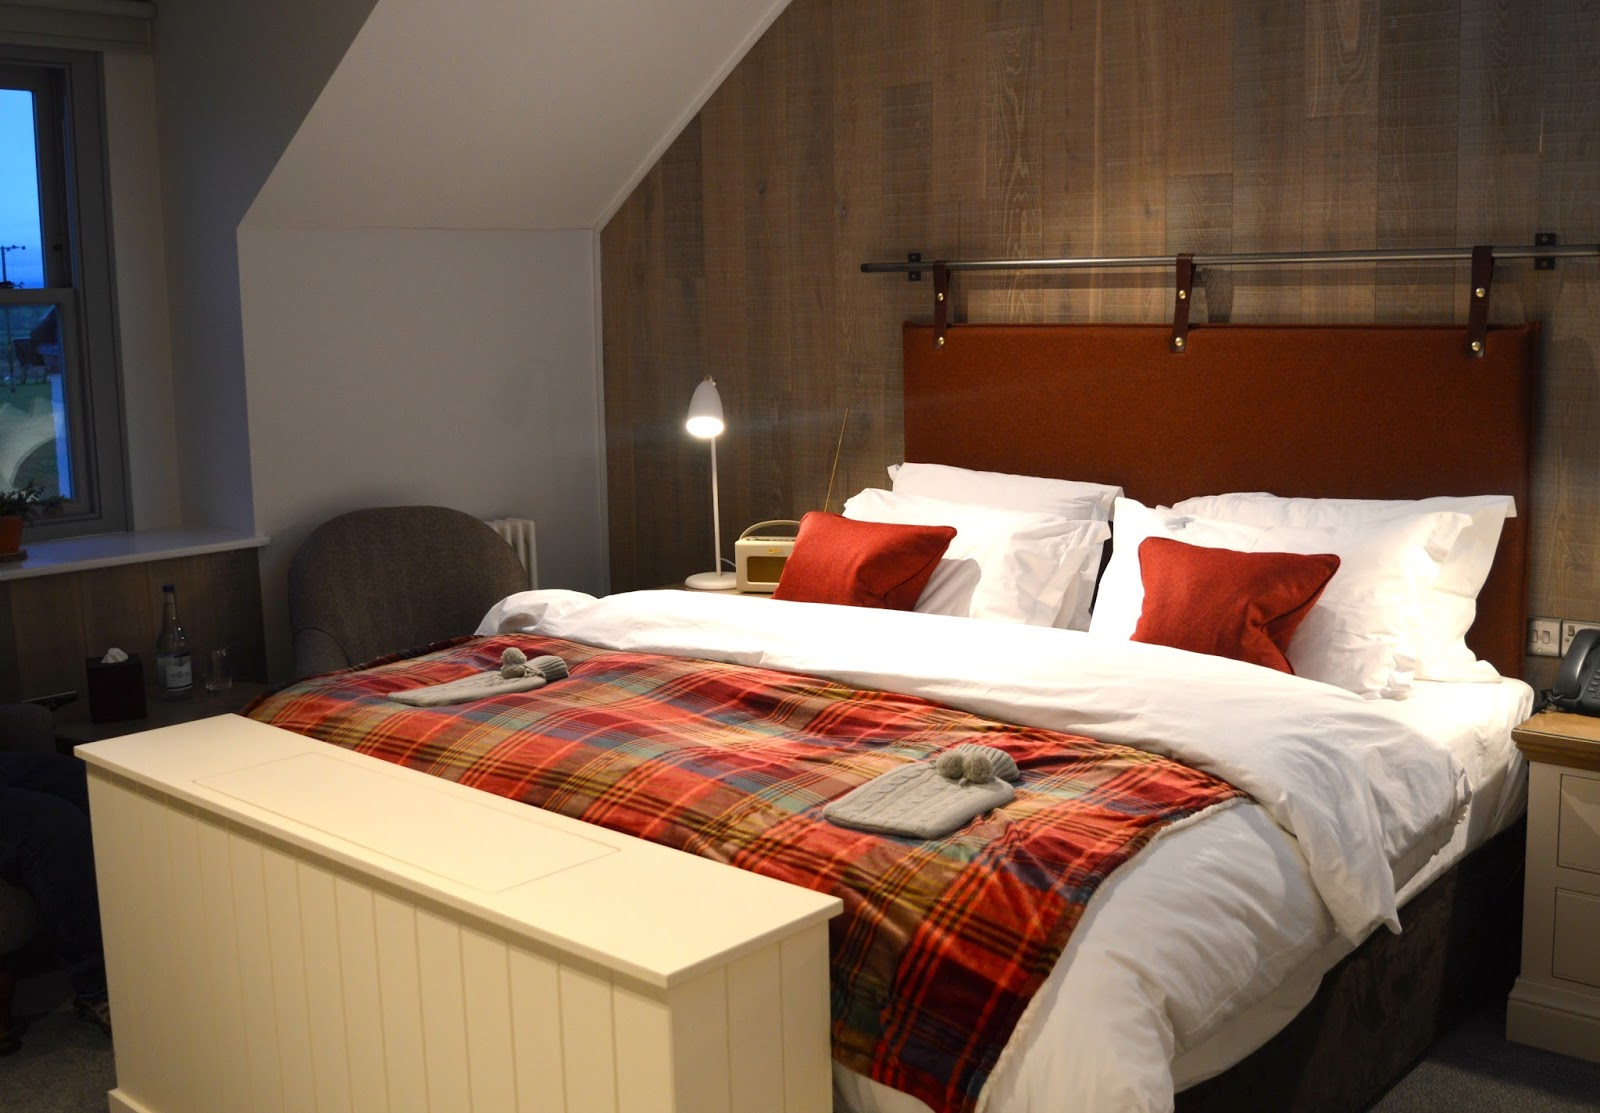 A Luxury Stay at The Pentonbridge Inn - The Best Hotel in Cumbria